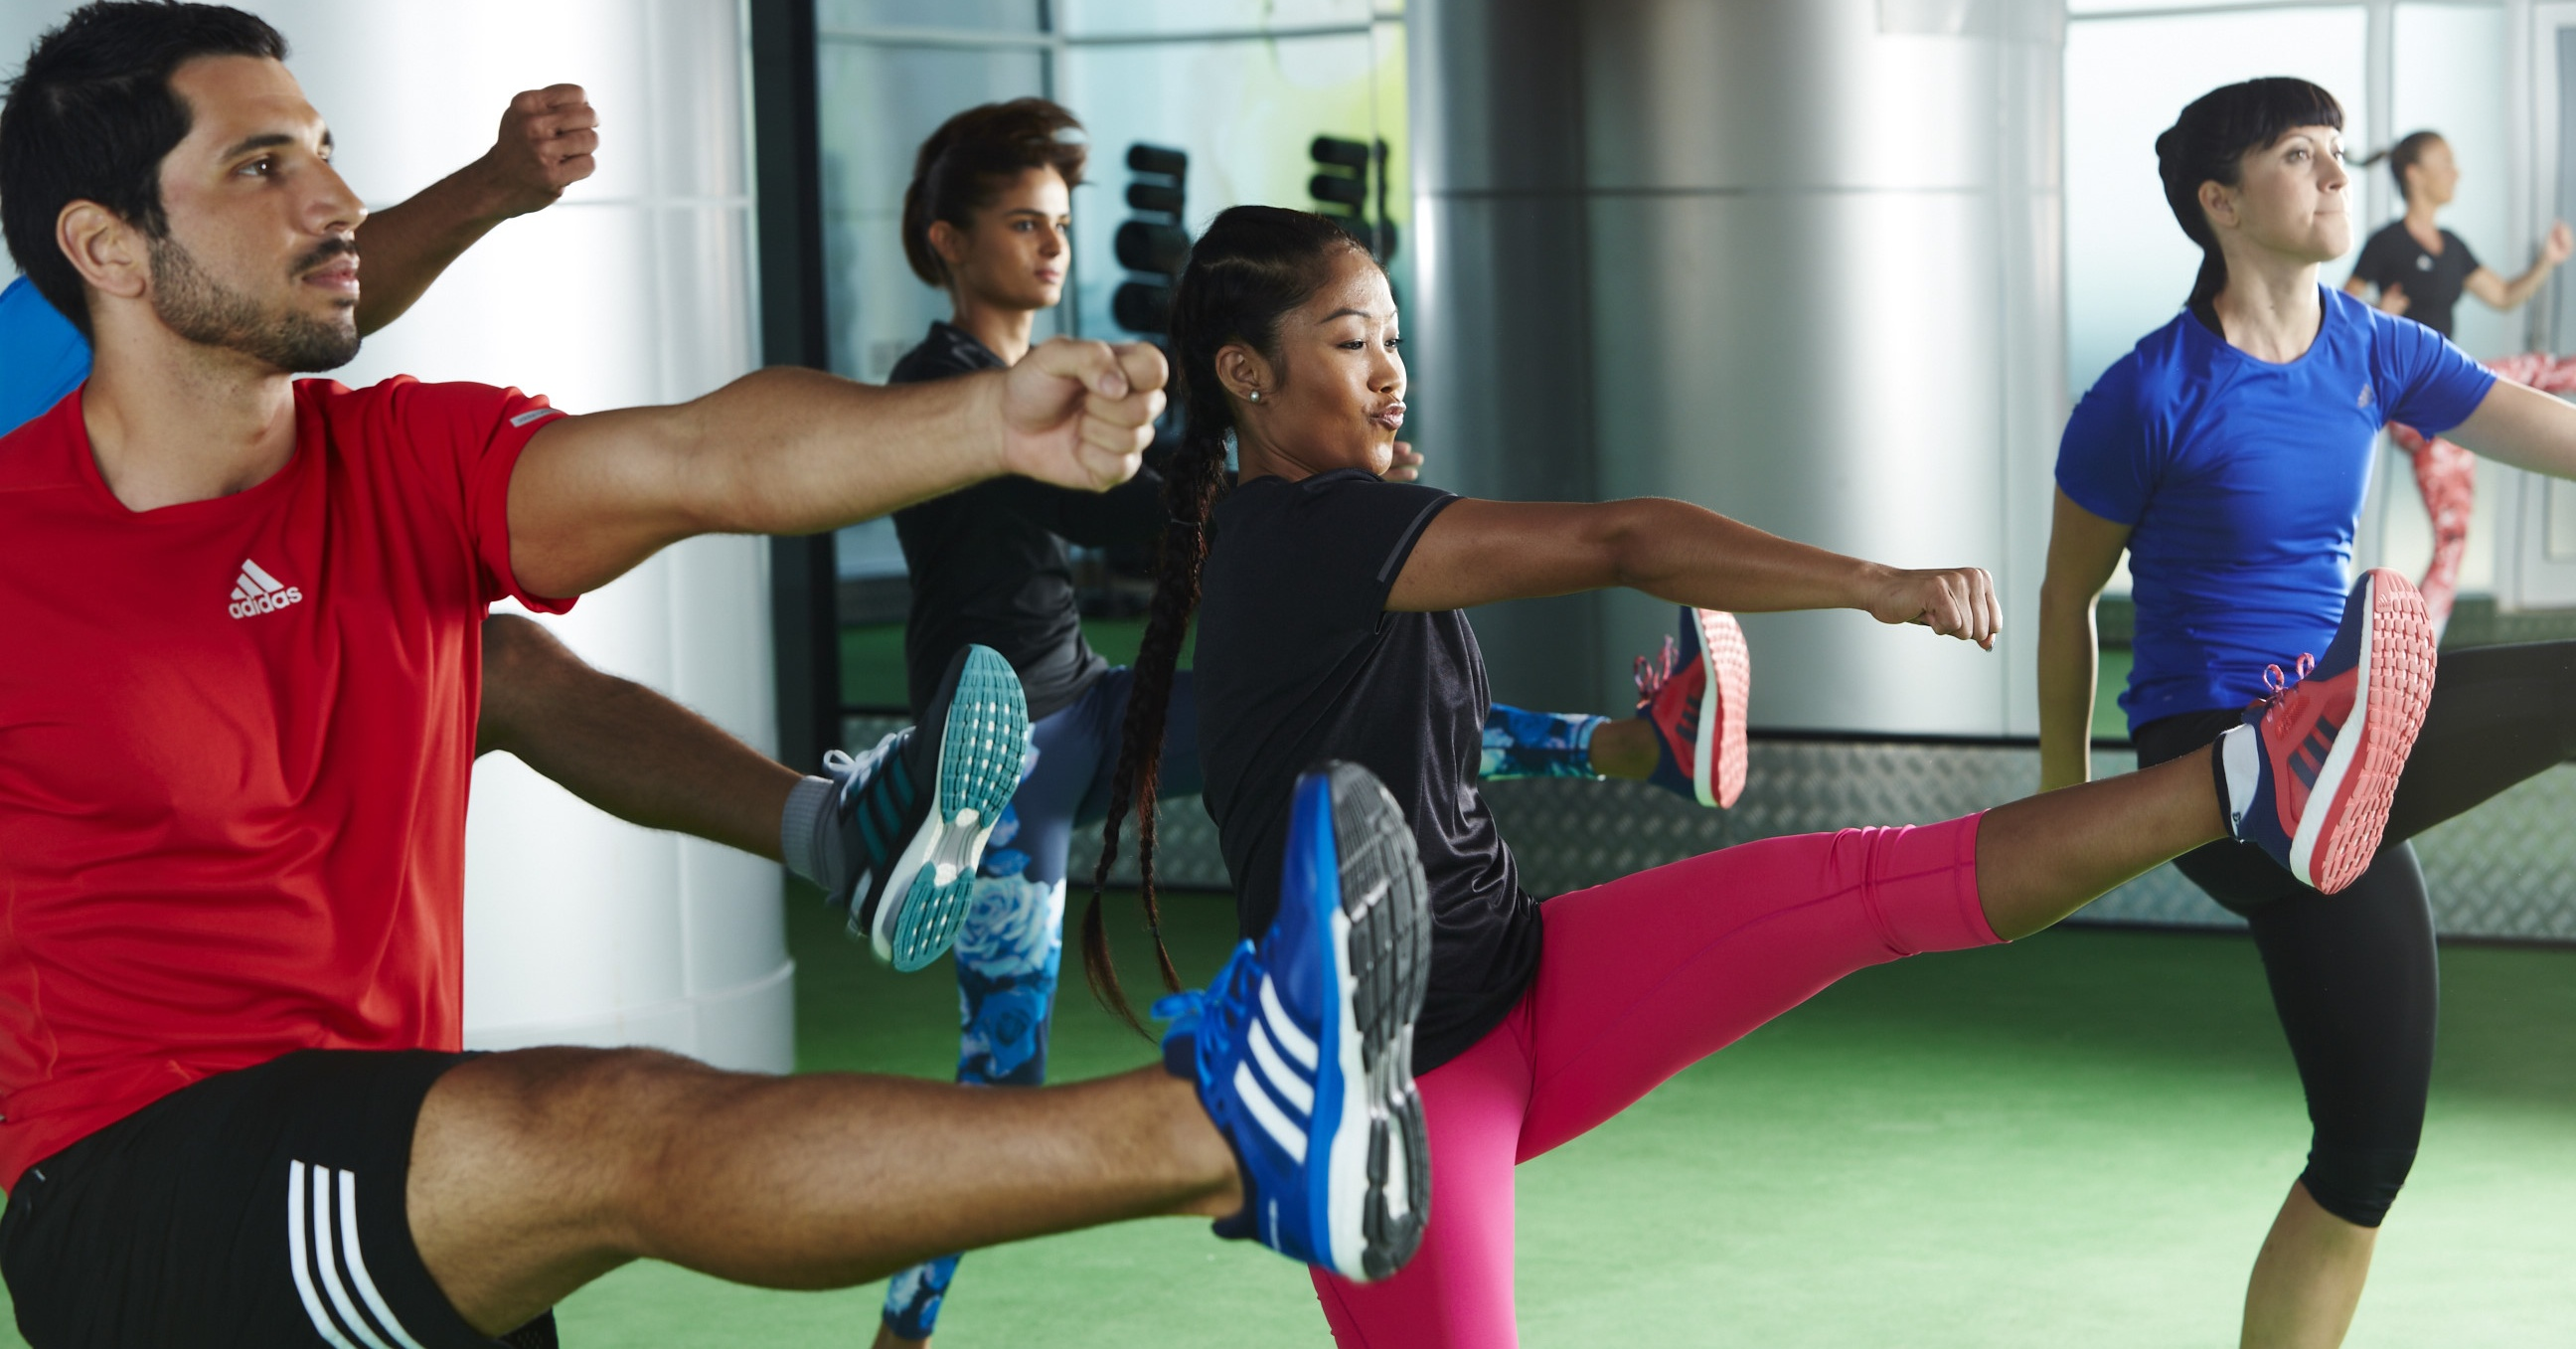 Fitness First Dubai group exercise classes